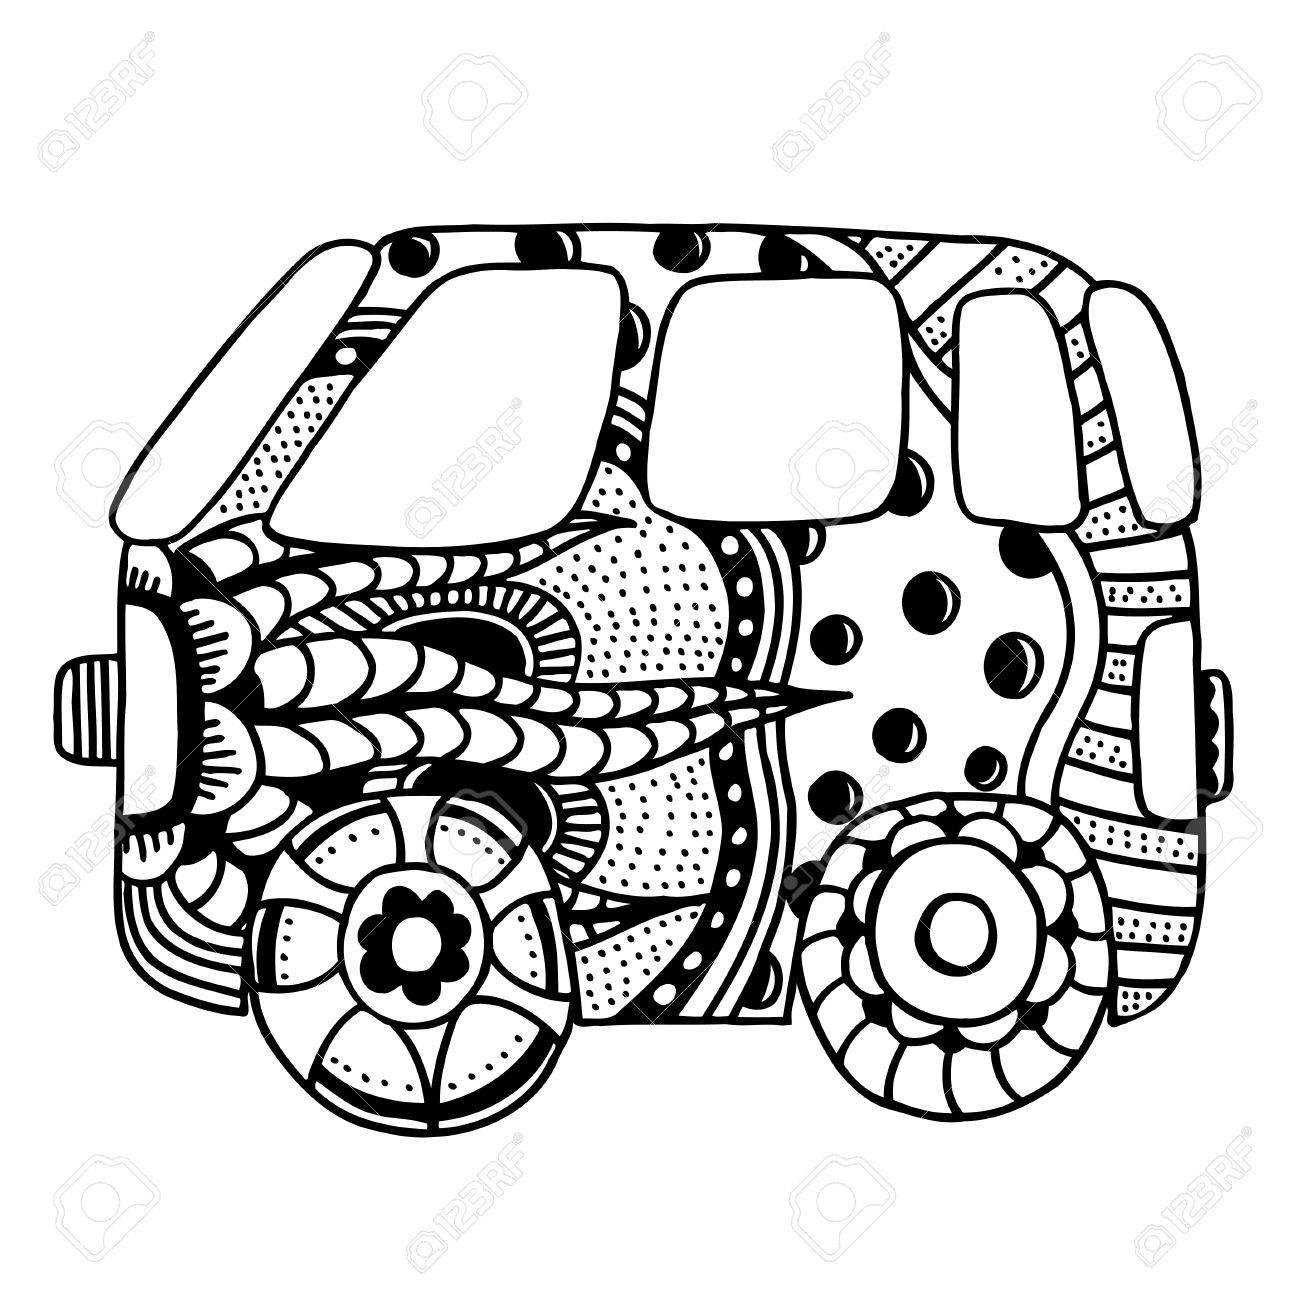 Hippie Vintage Car A Mini Van. Made By Trace From Sketch. Monochrome ...